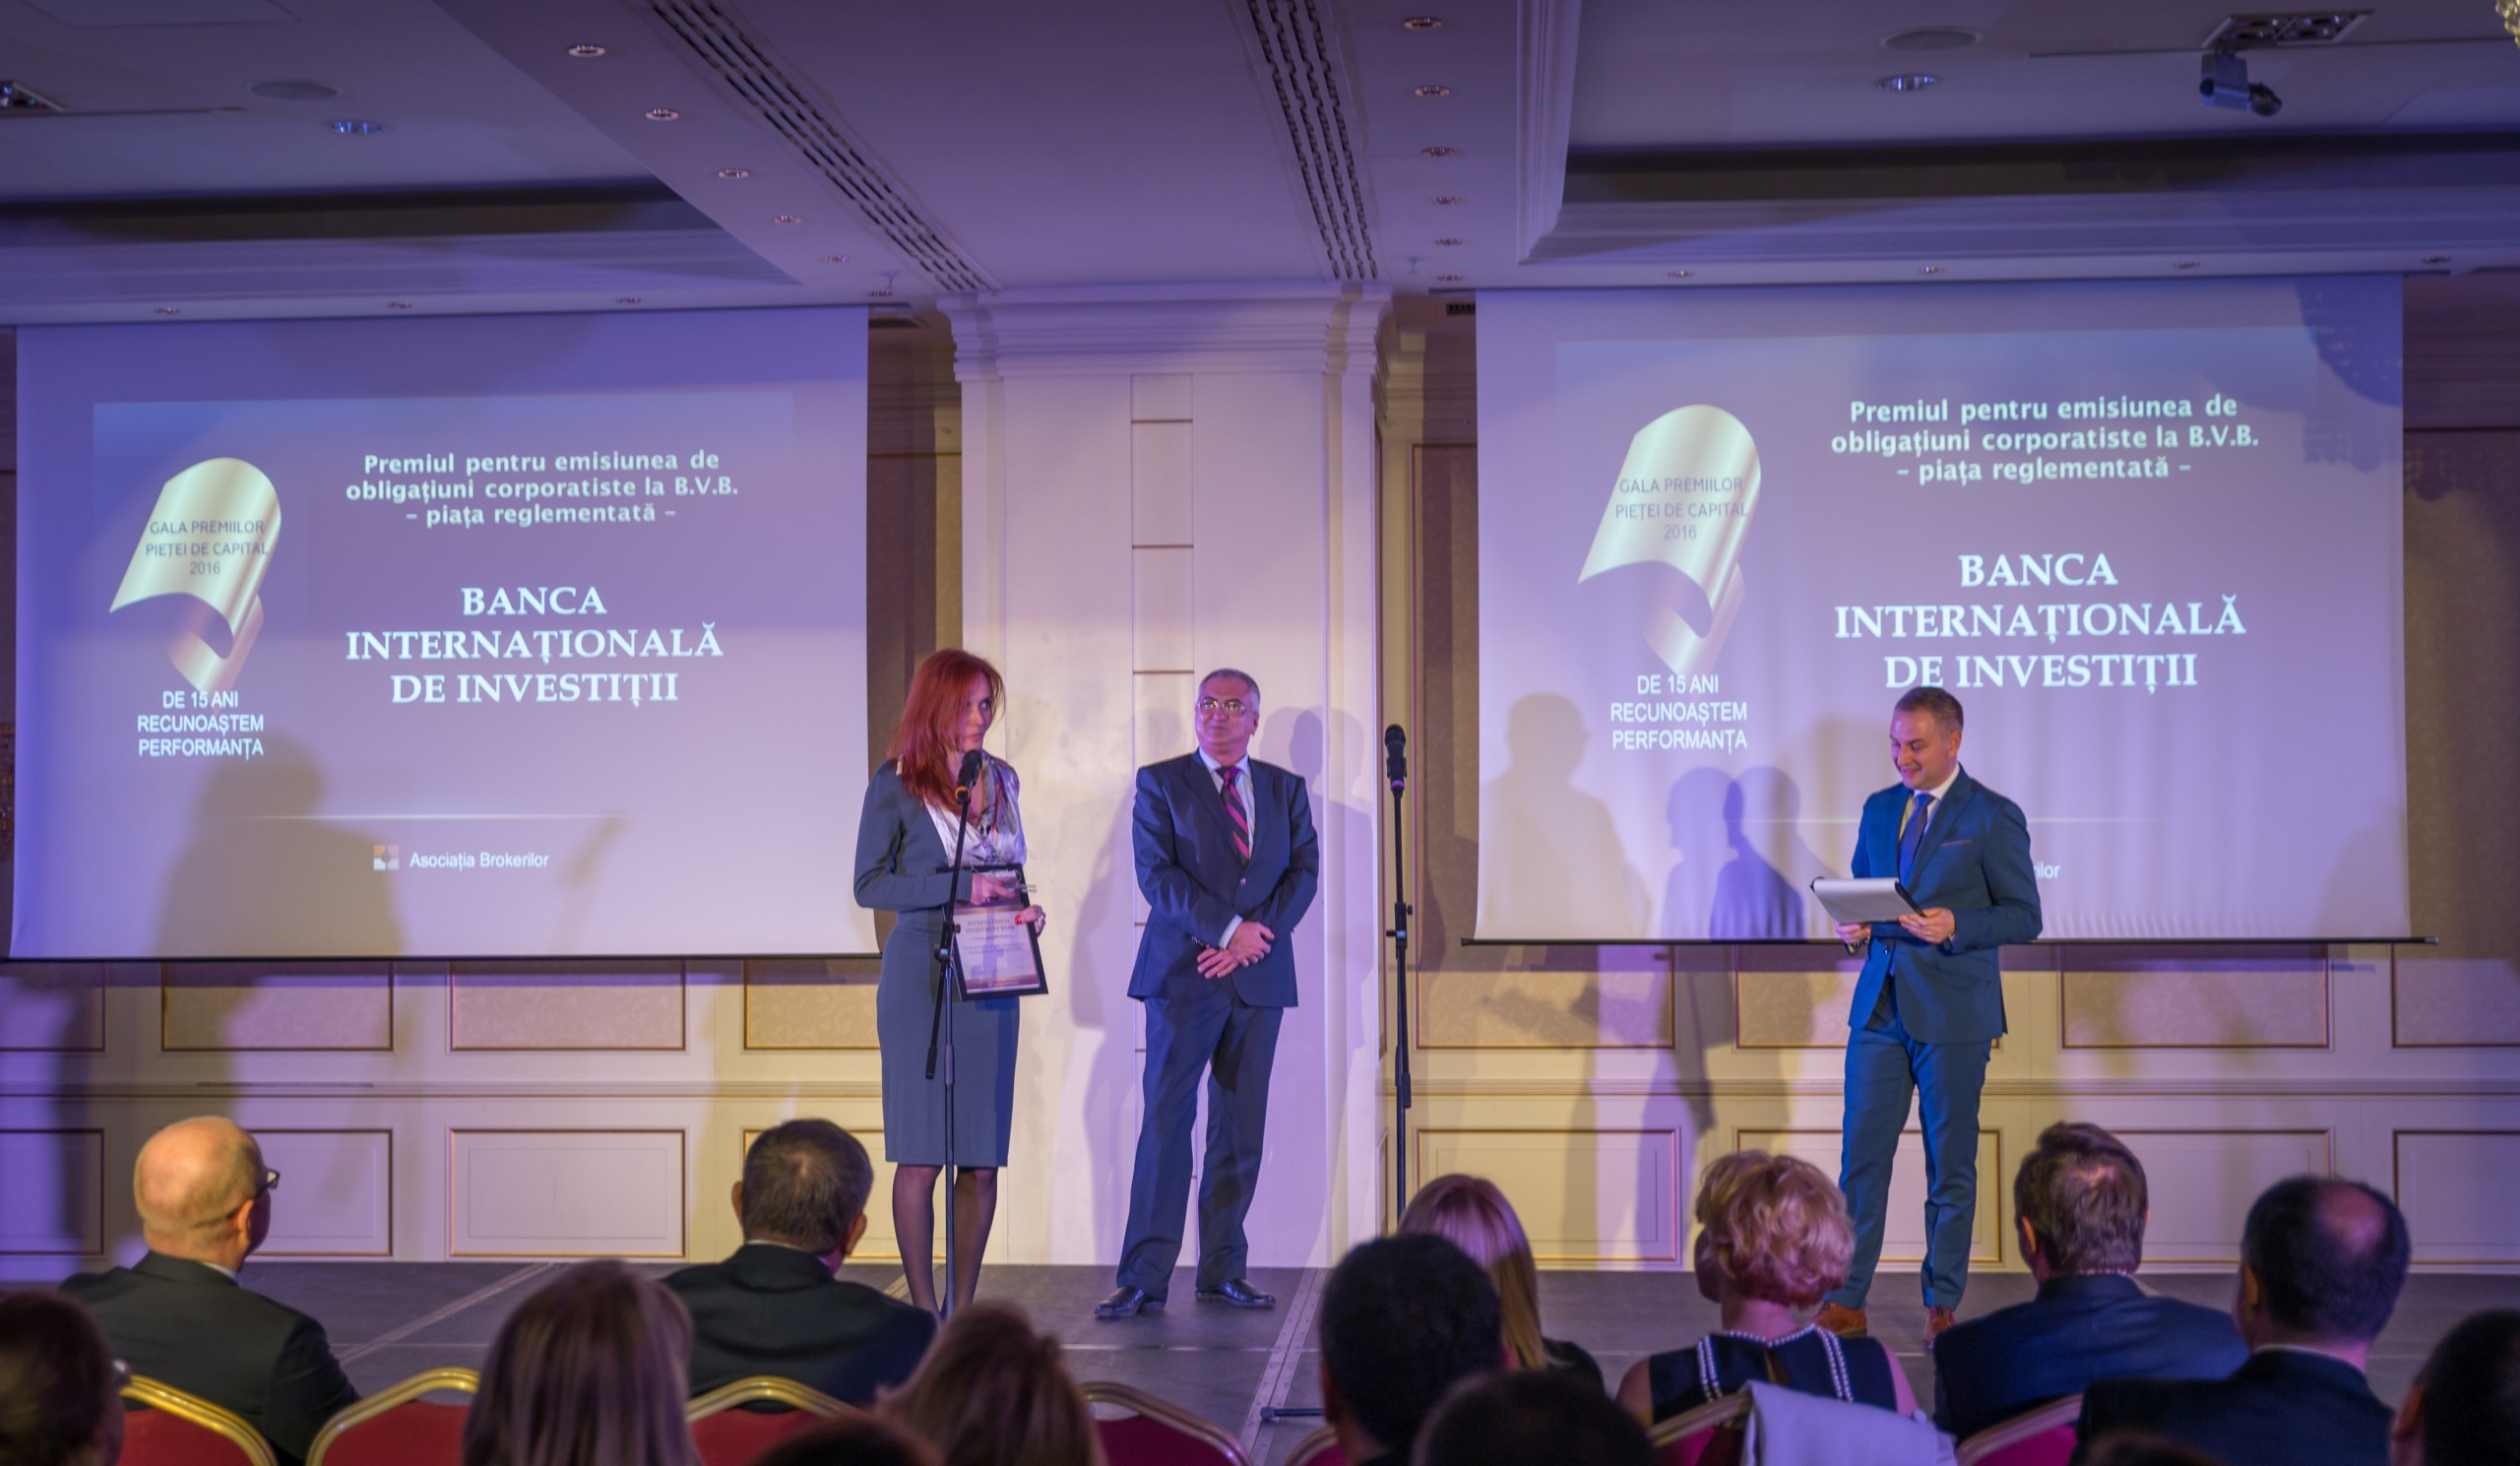 IIB again awarded for contribution to development of Romania's corporate bonds market